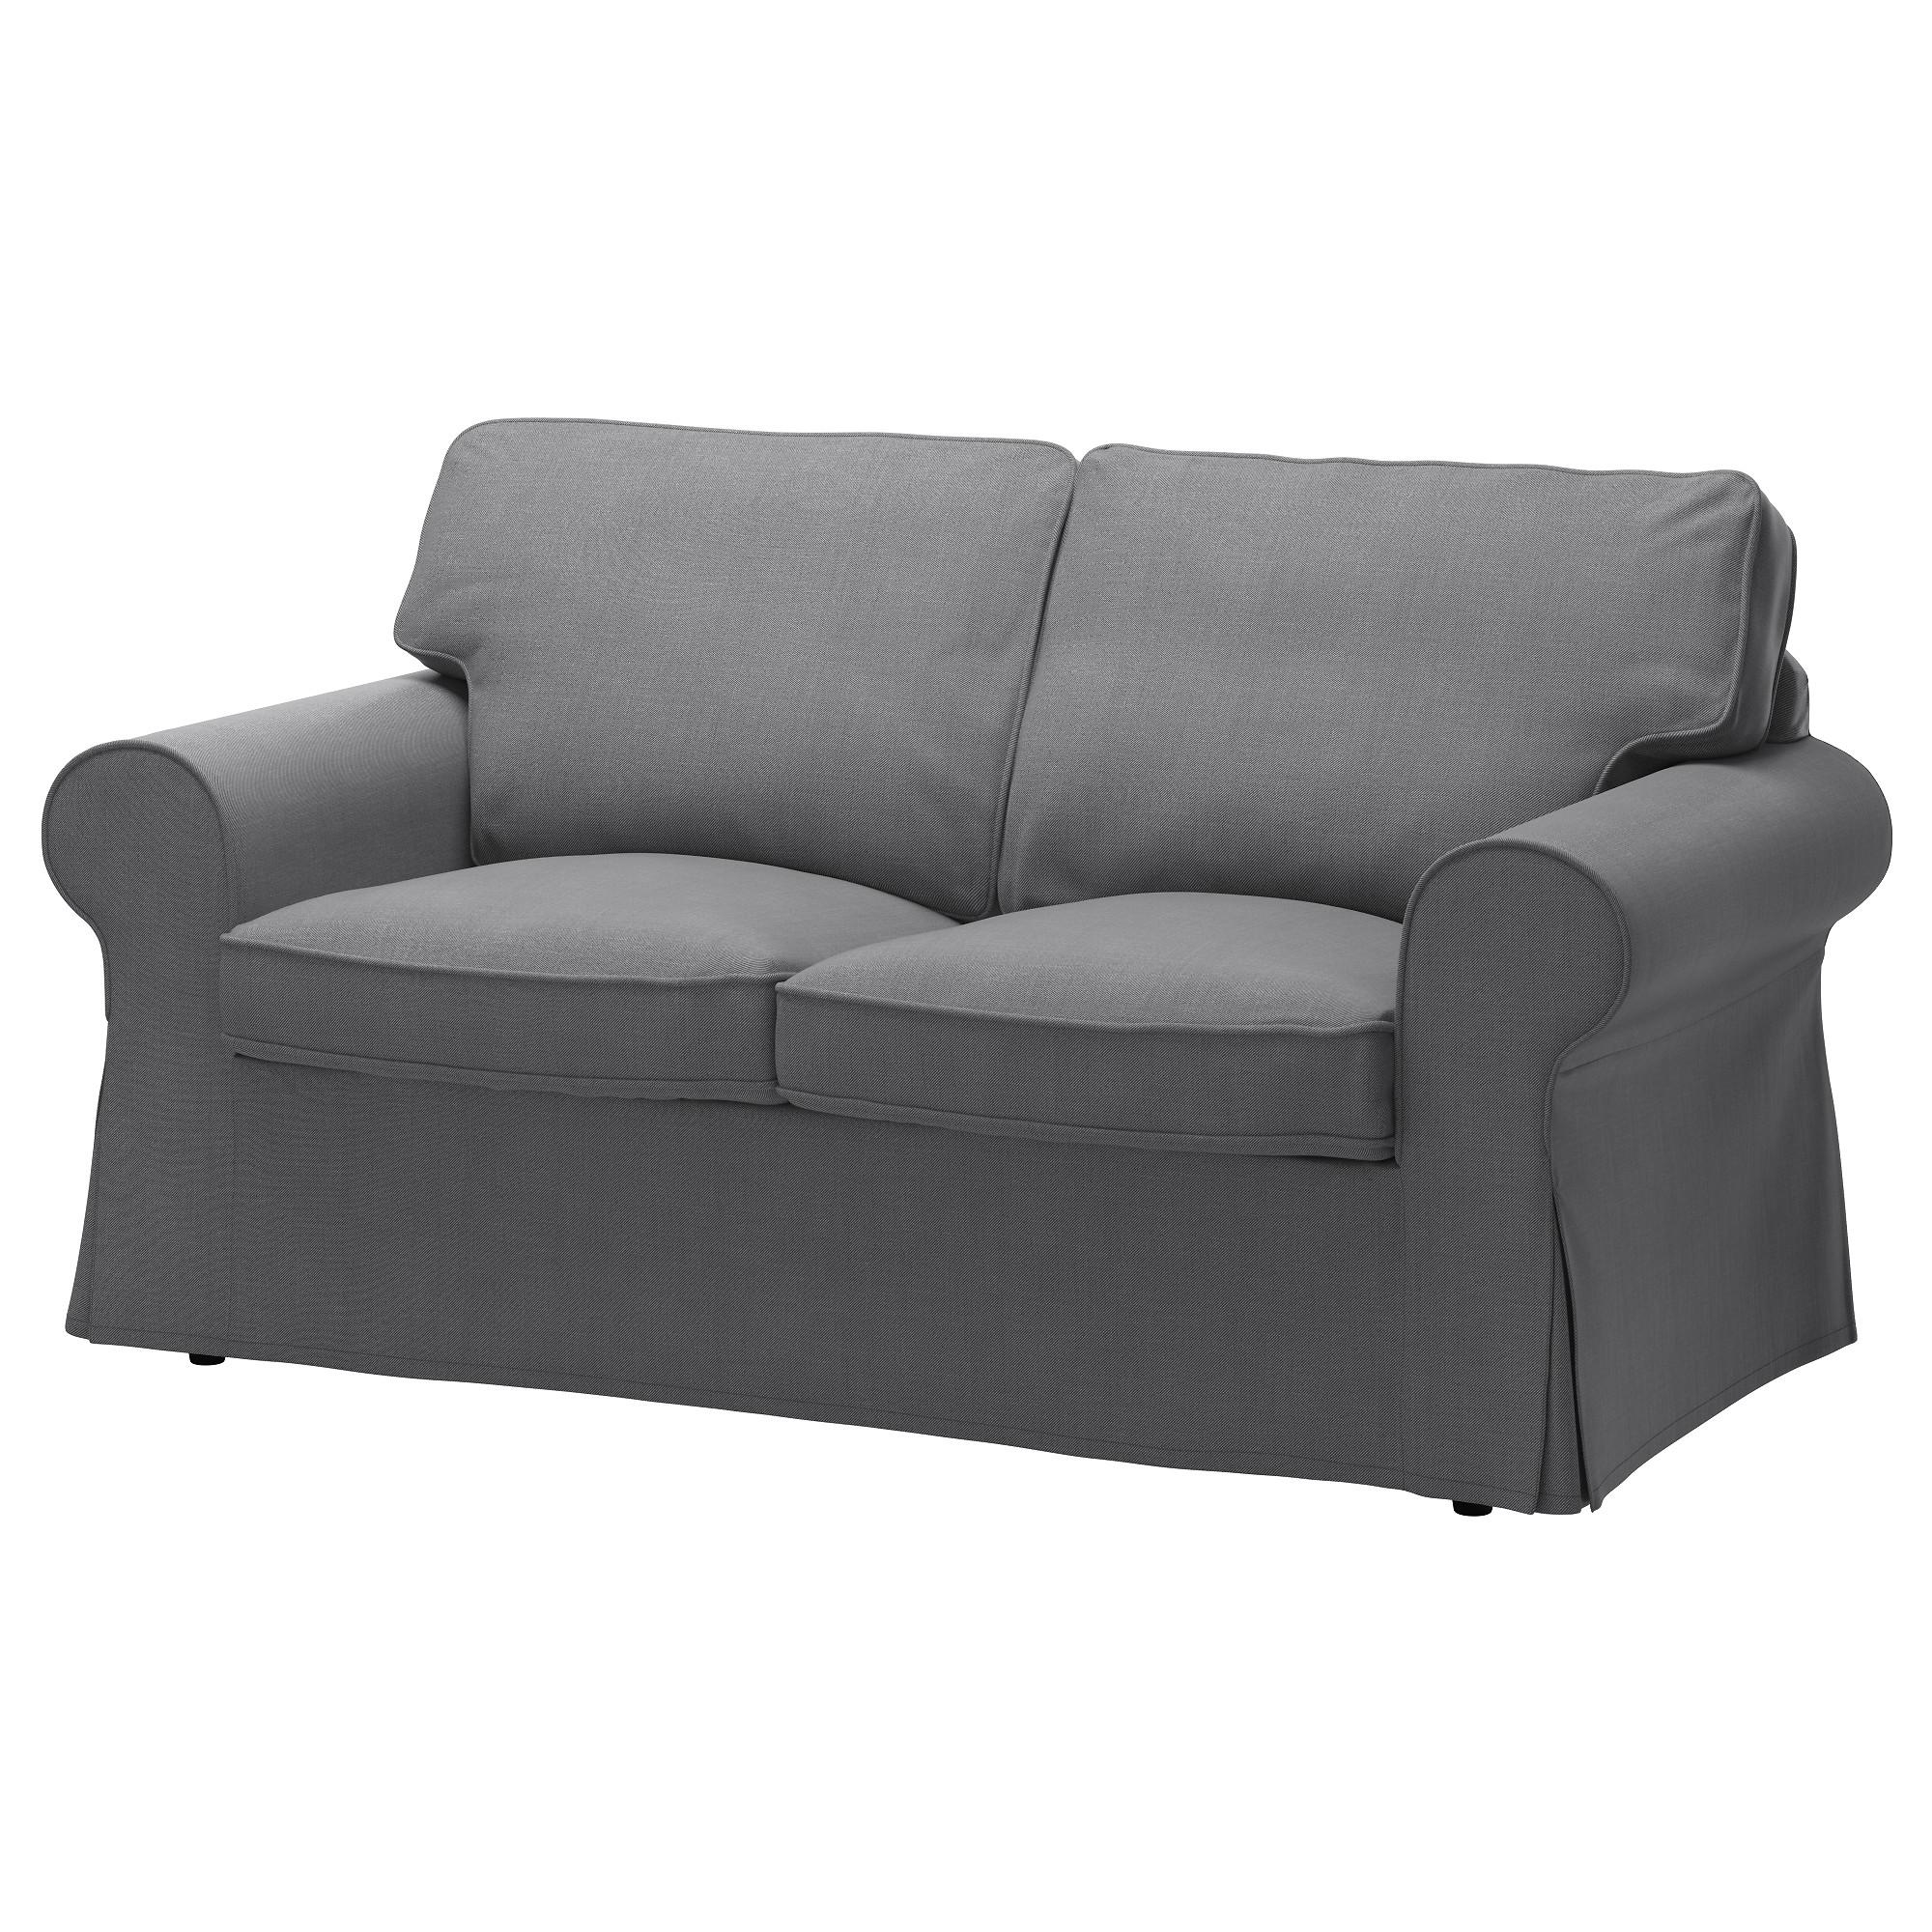 Small Sofa & 2 Seater Sofa | Ikea For Small 2 Seater Sofas (Image 9 of 20)